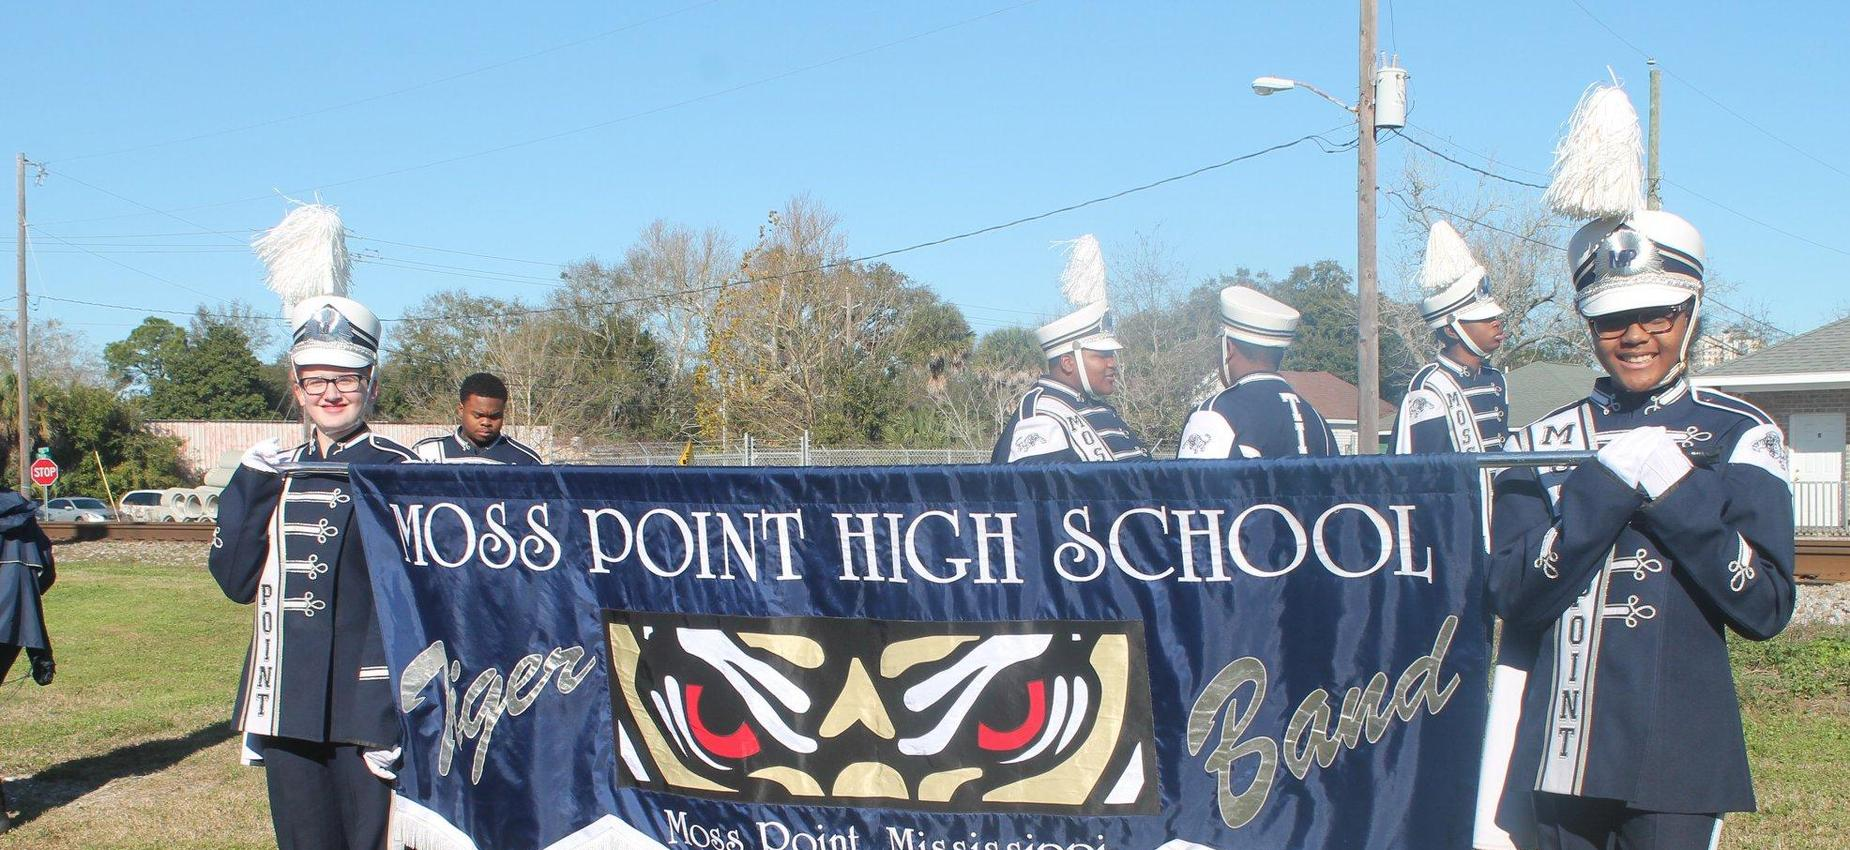 Band members holding a banner